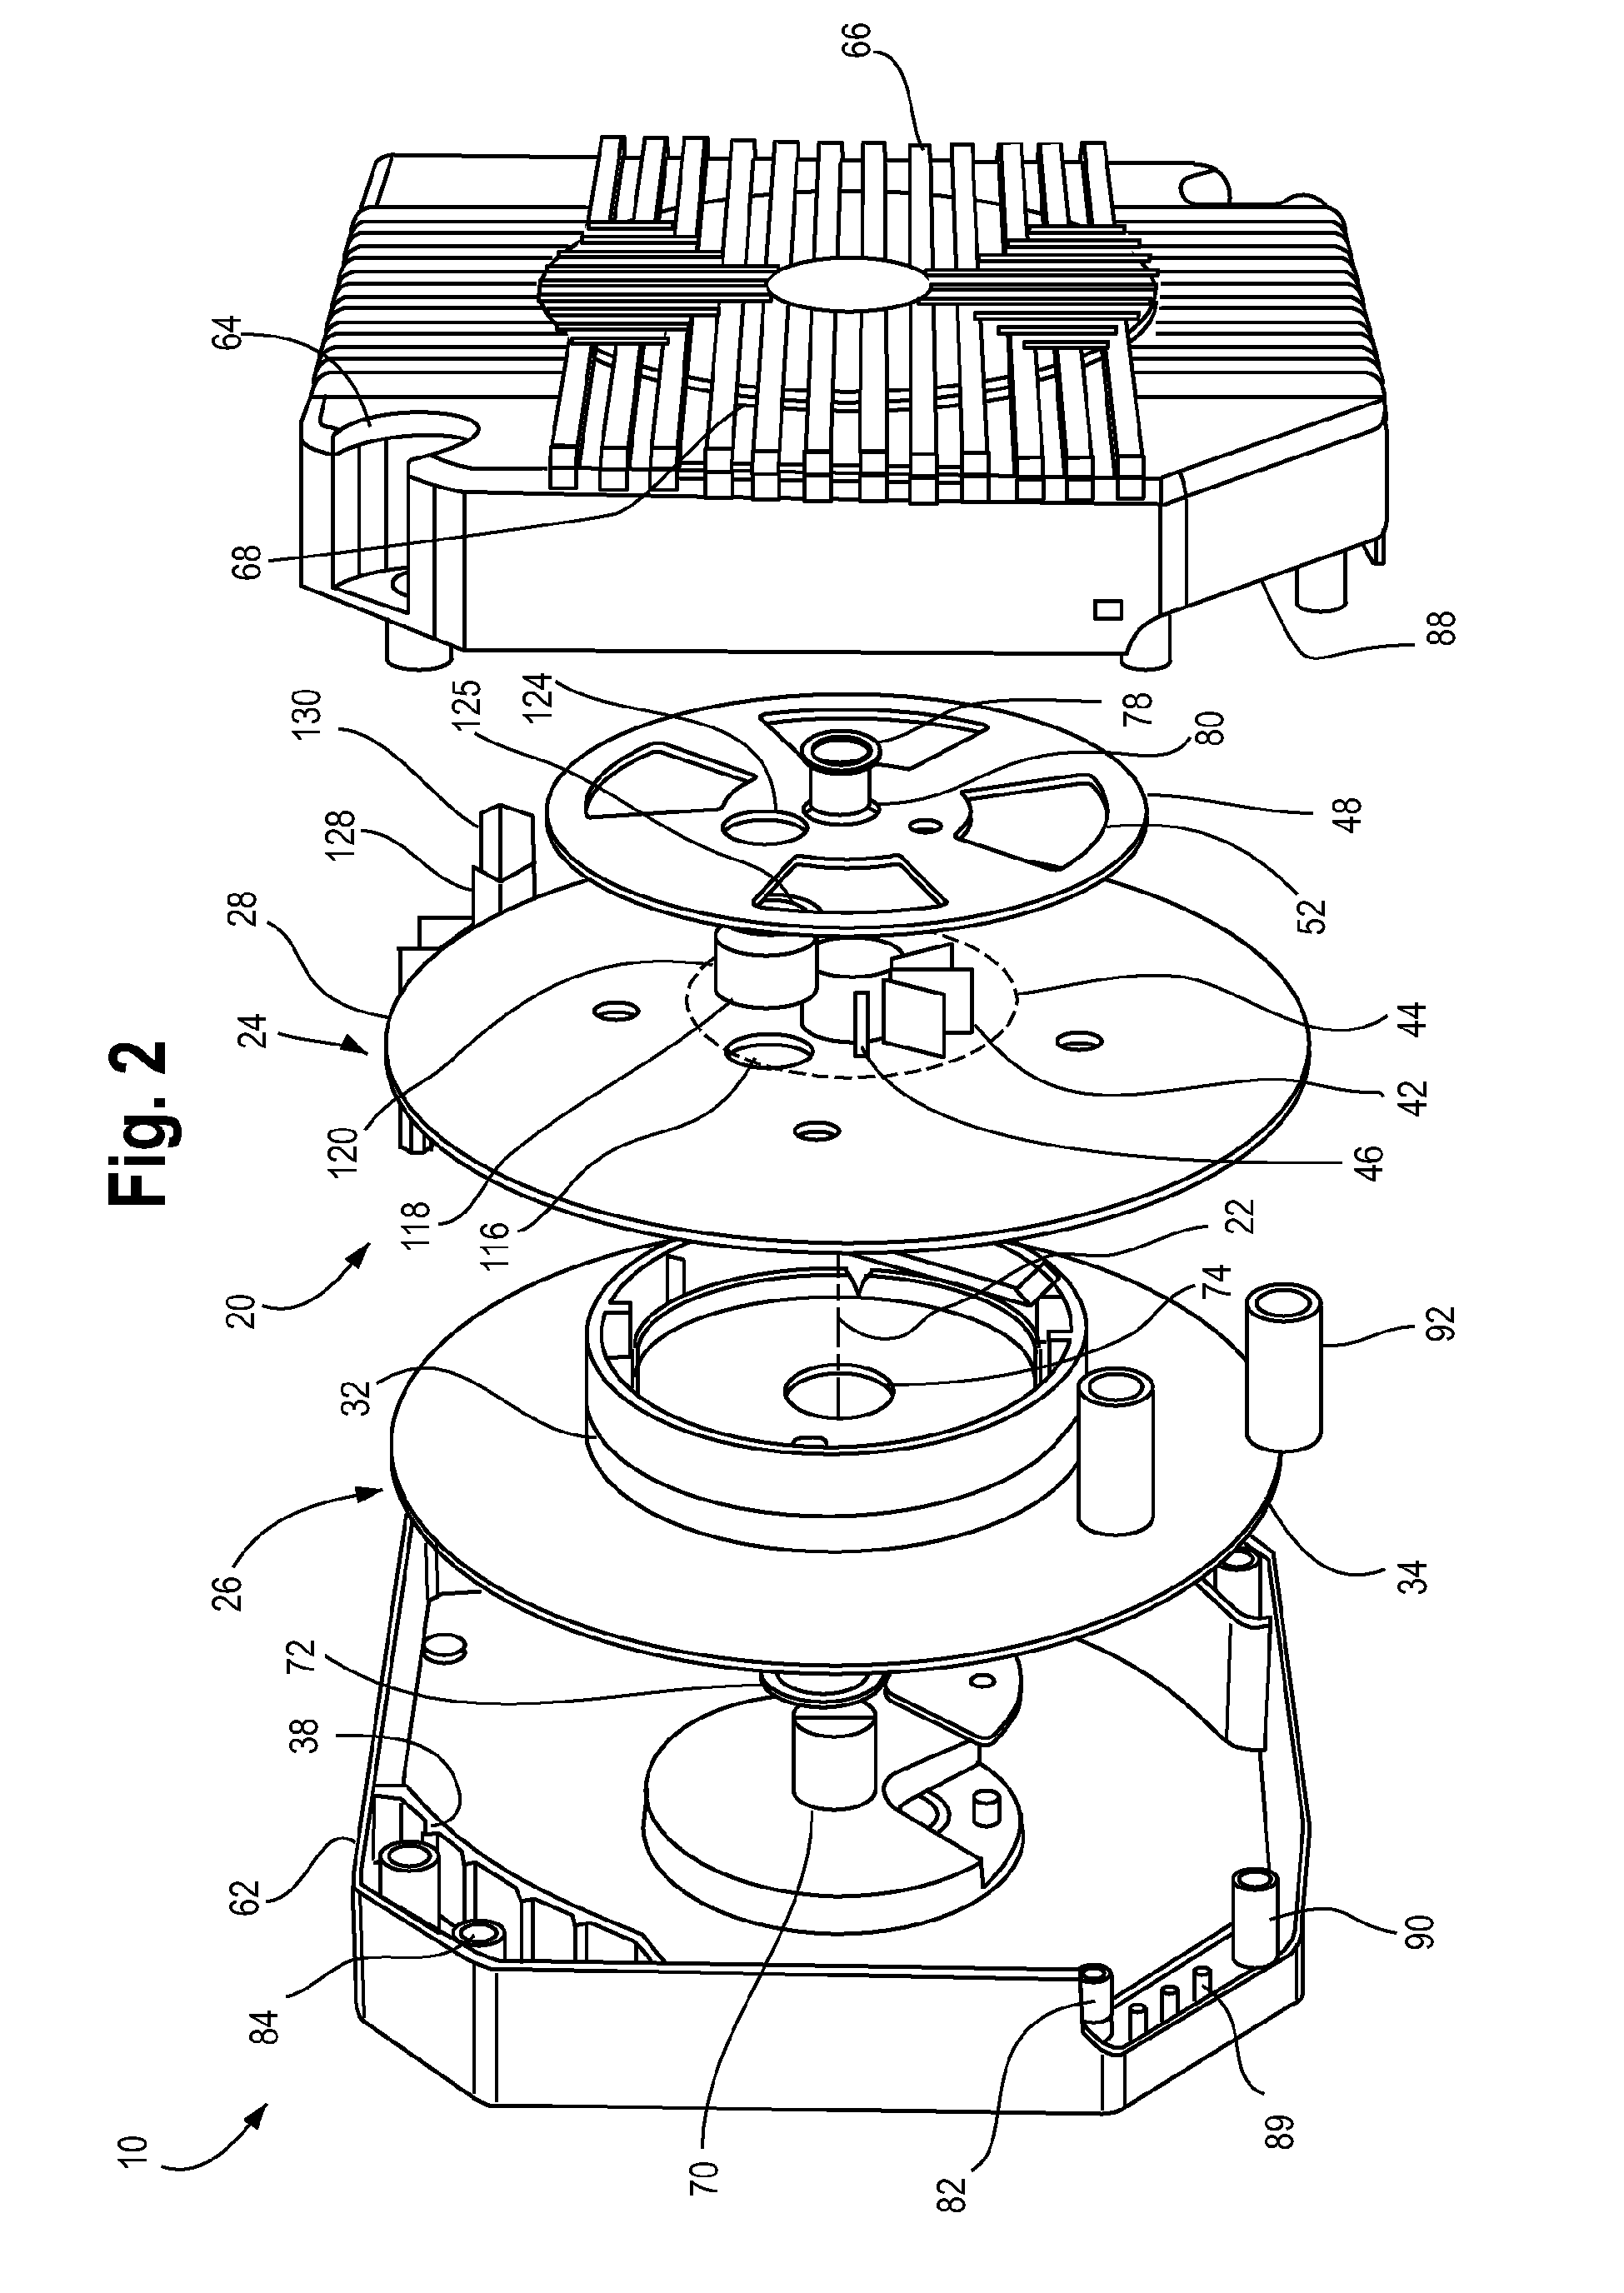 patent ep2455319a2 - retractable cord reel